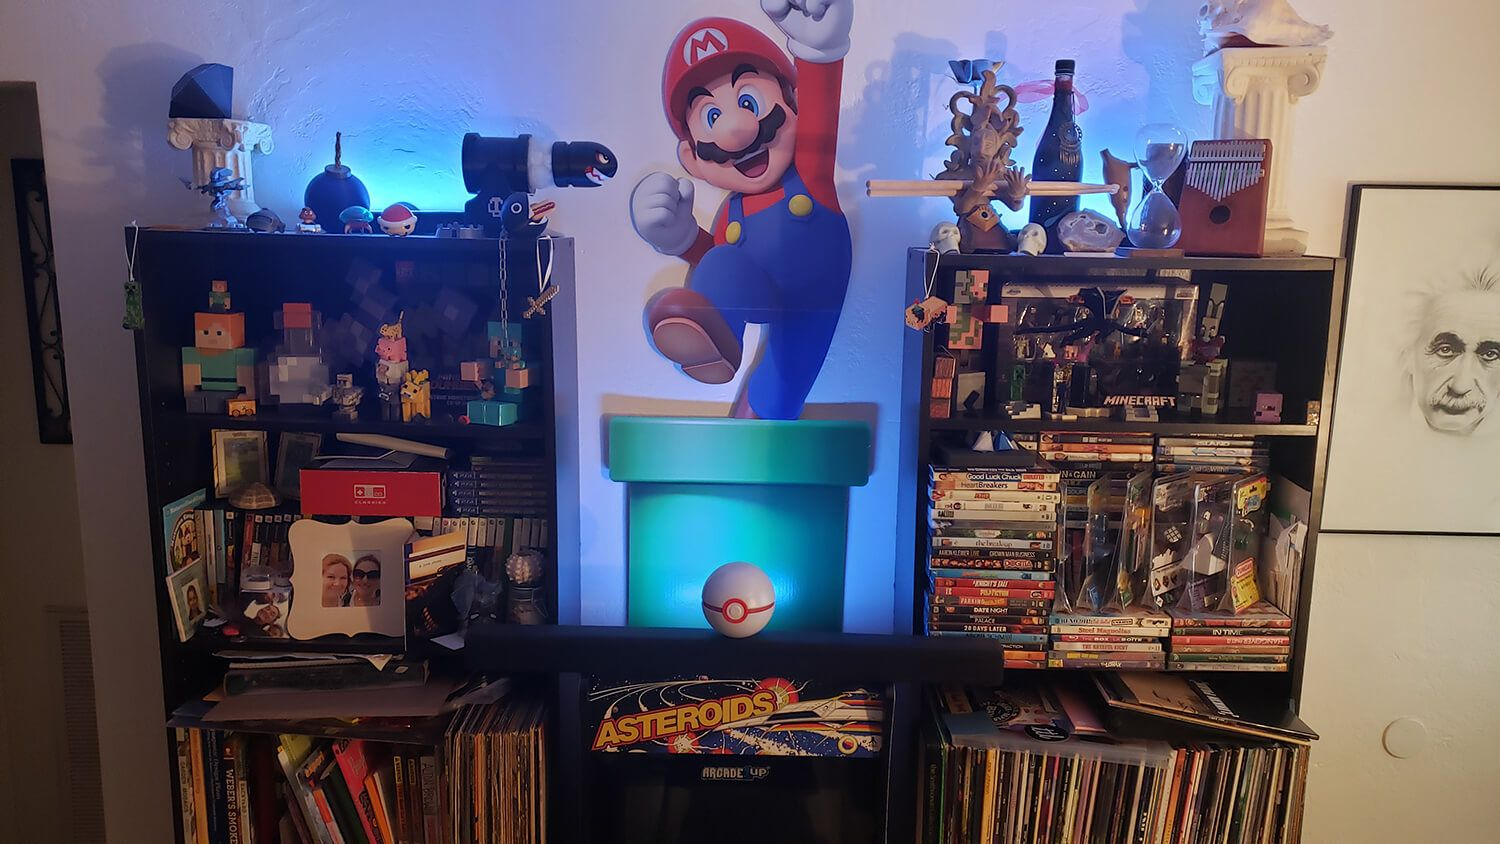 Across the room are a 1UP Asteroids arcade cabinet and bookshelves full of curiosities and collectables